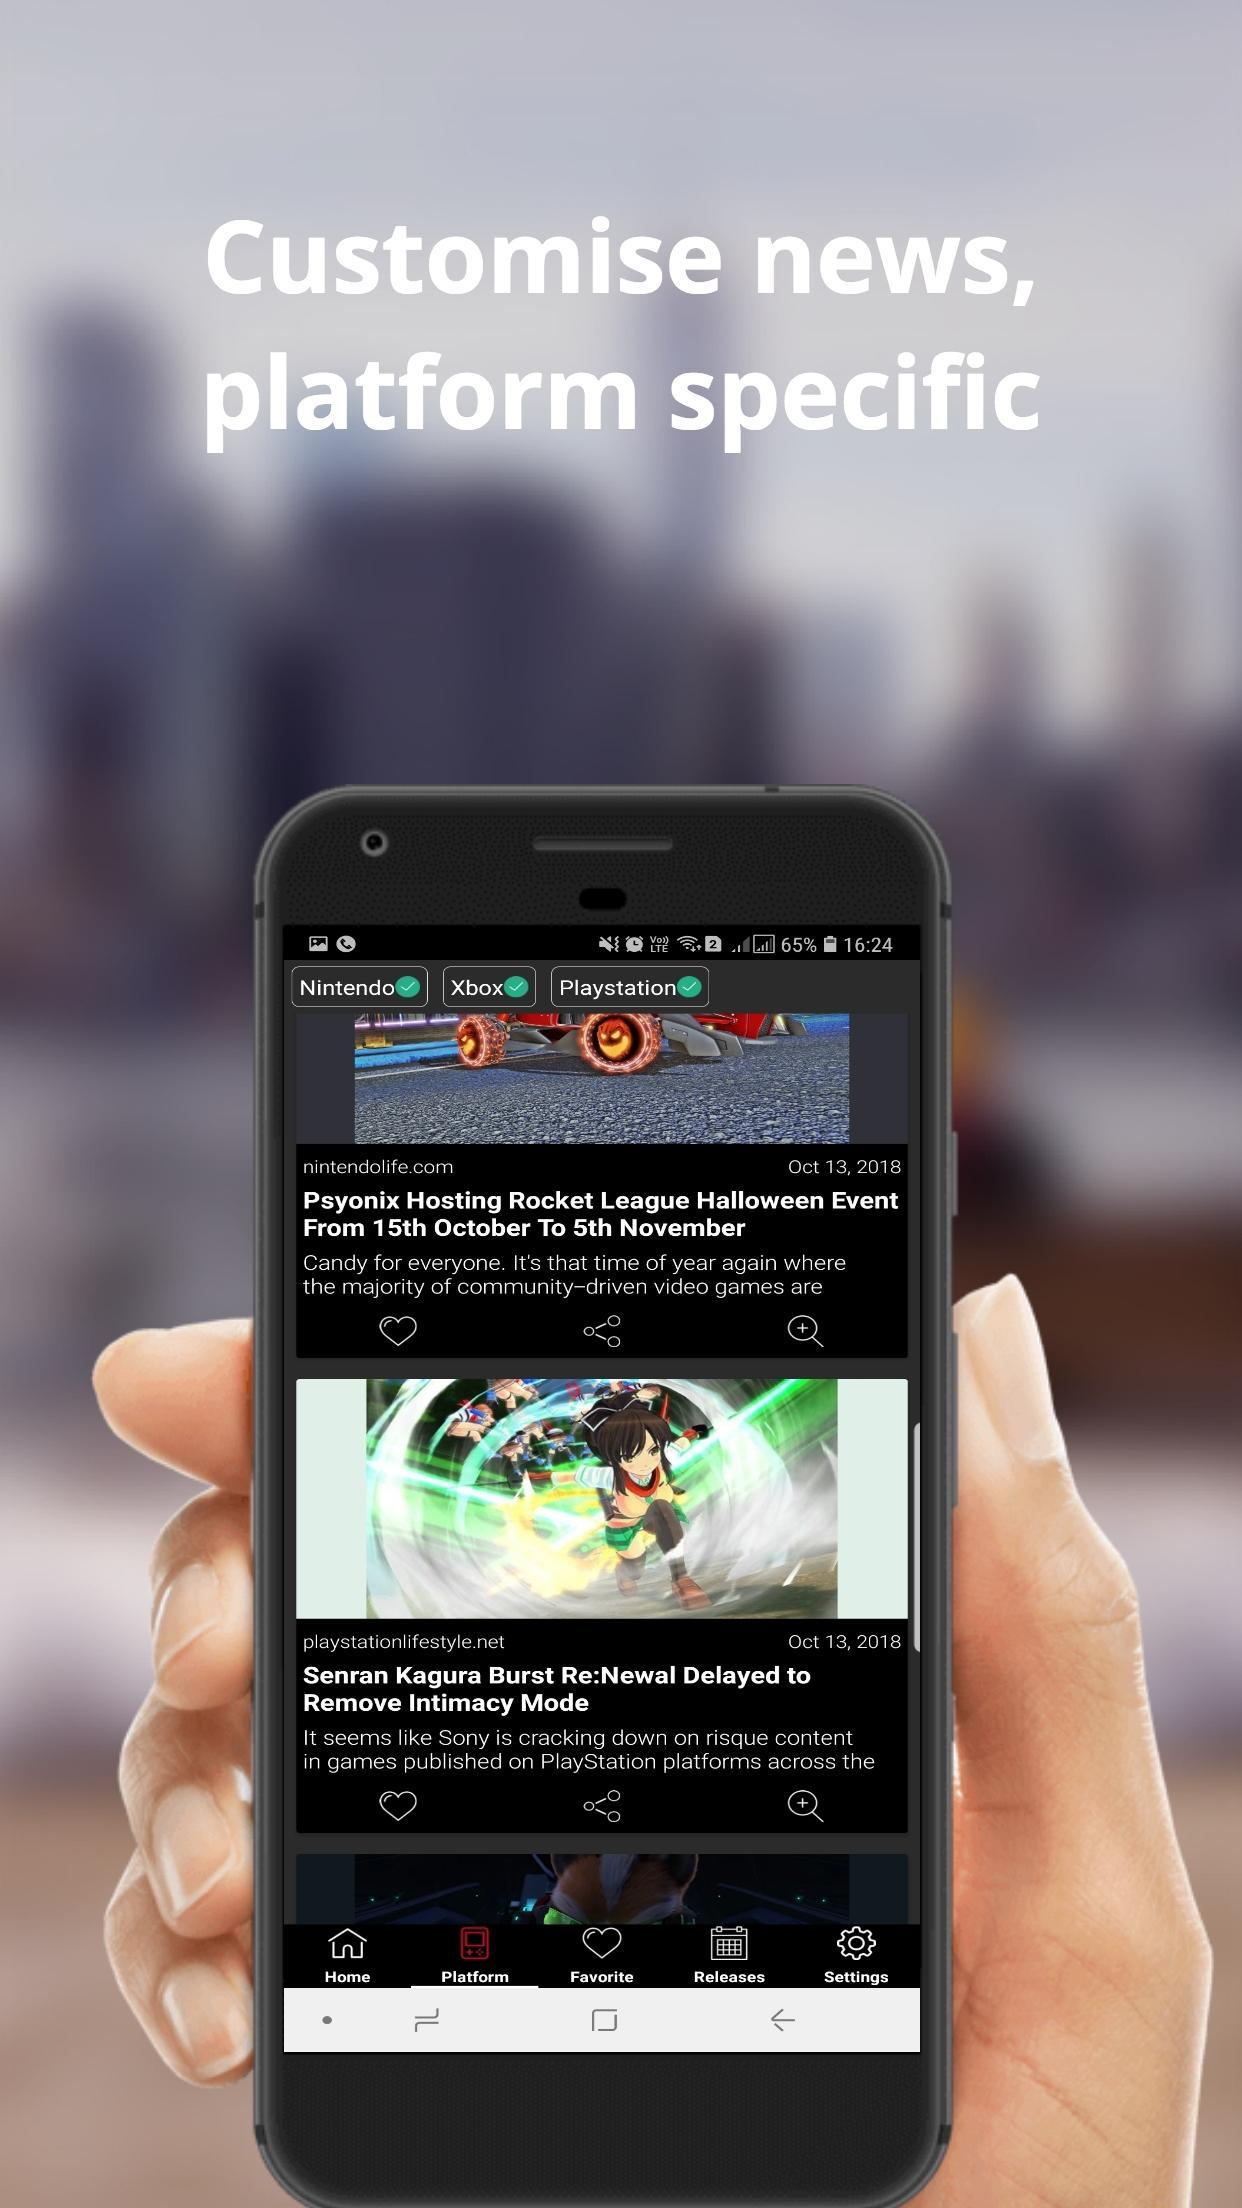 Gamify Gaming news & video game review & news app for